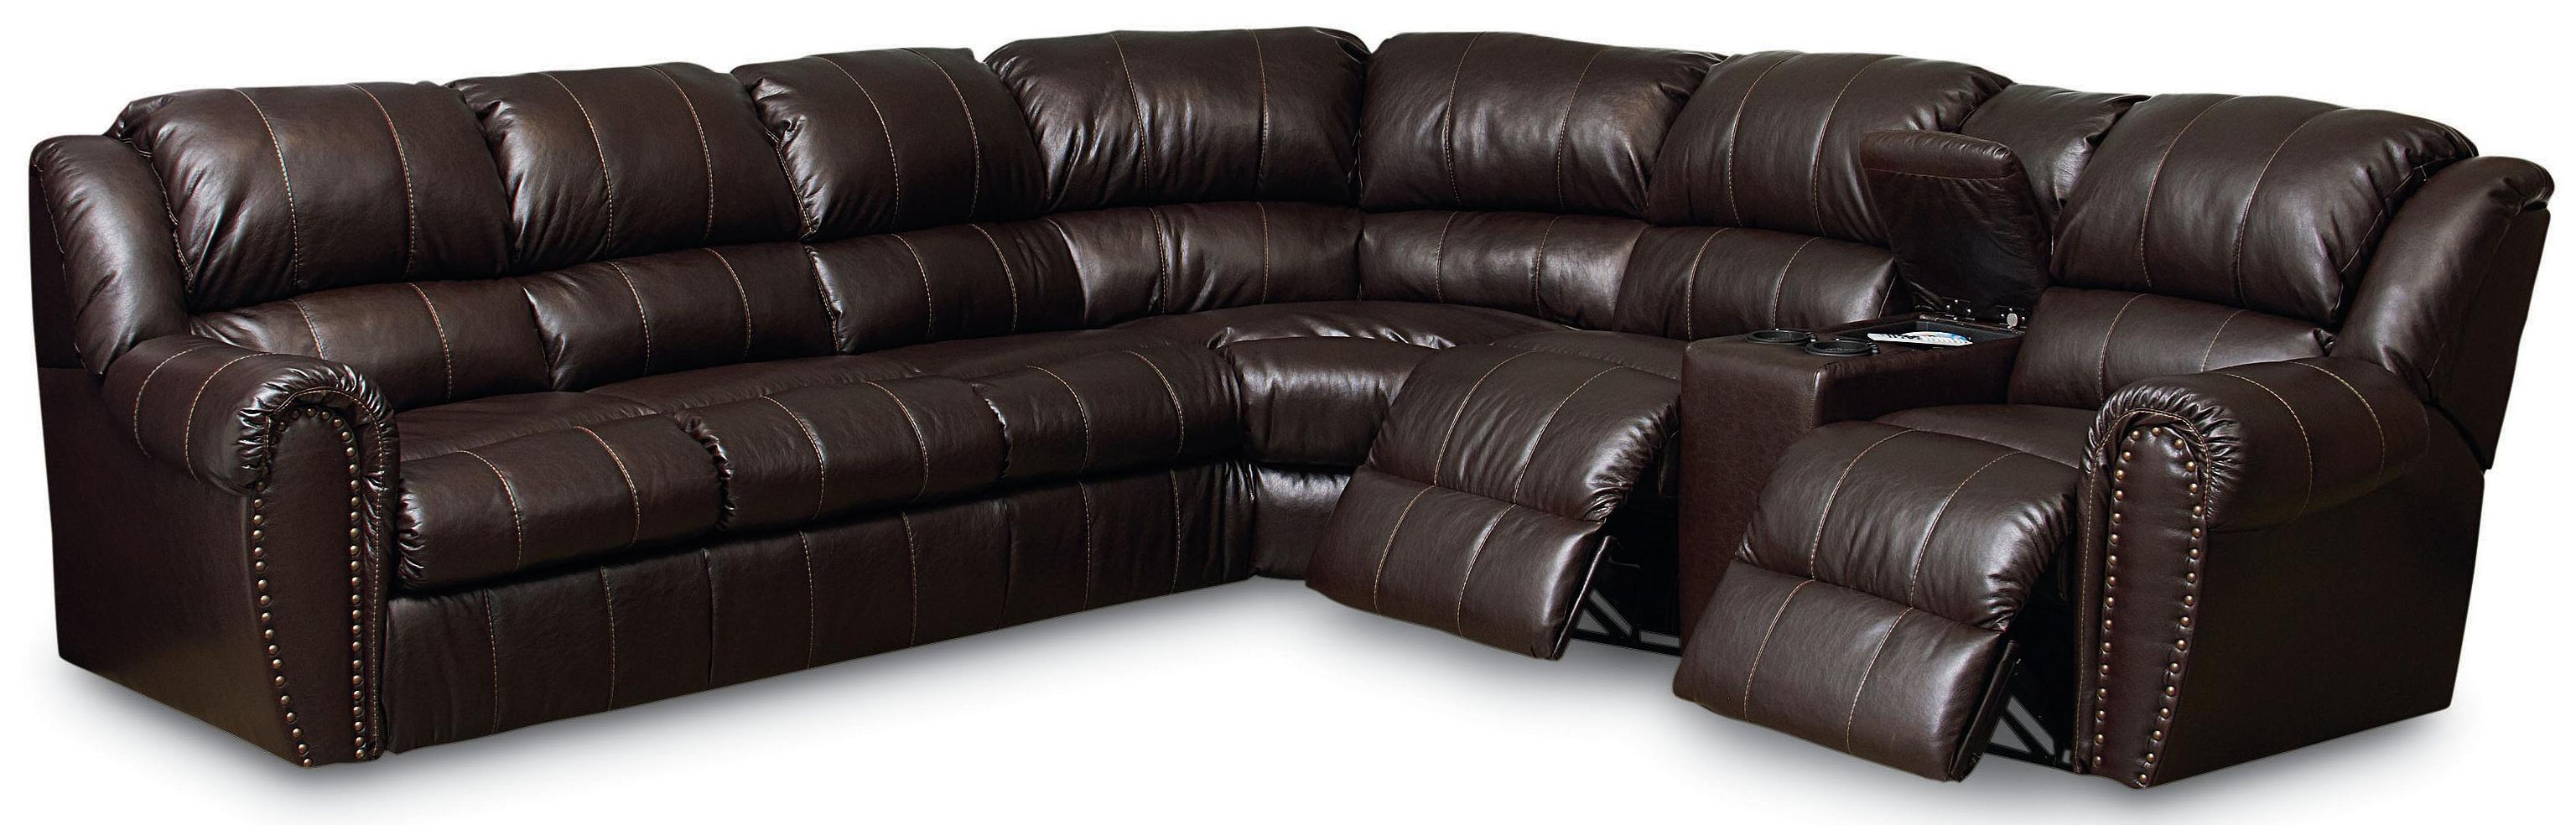 Lane summerlin traditional reclining sectional sofa with for Furniture 66 long lane liverpool